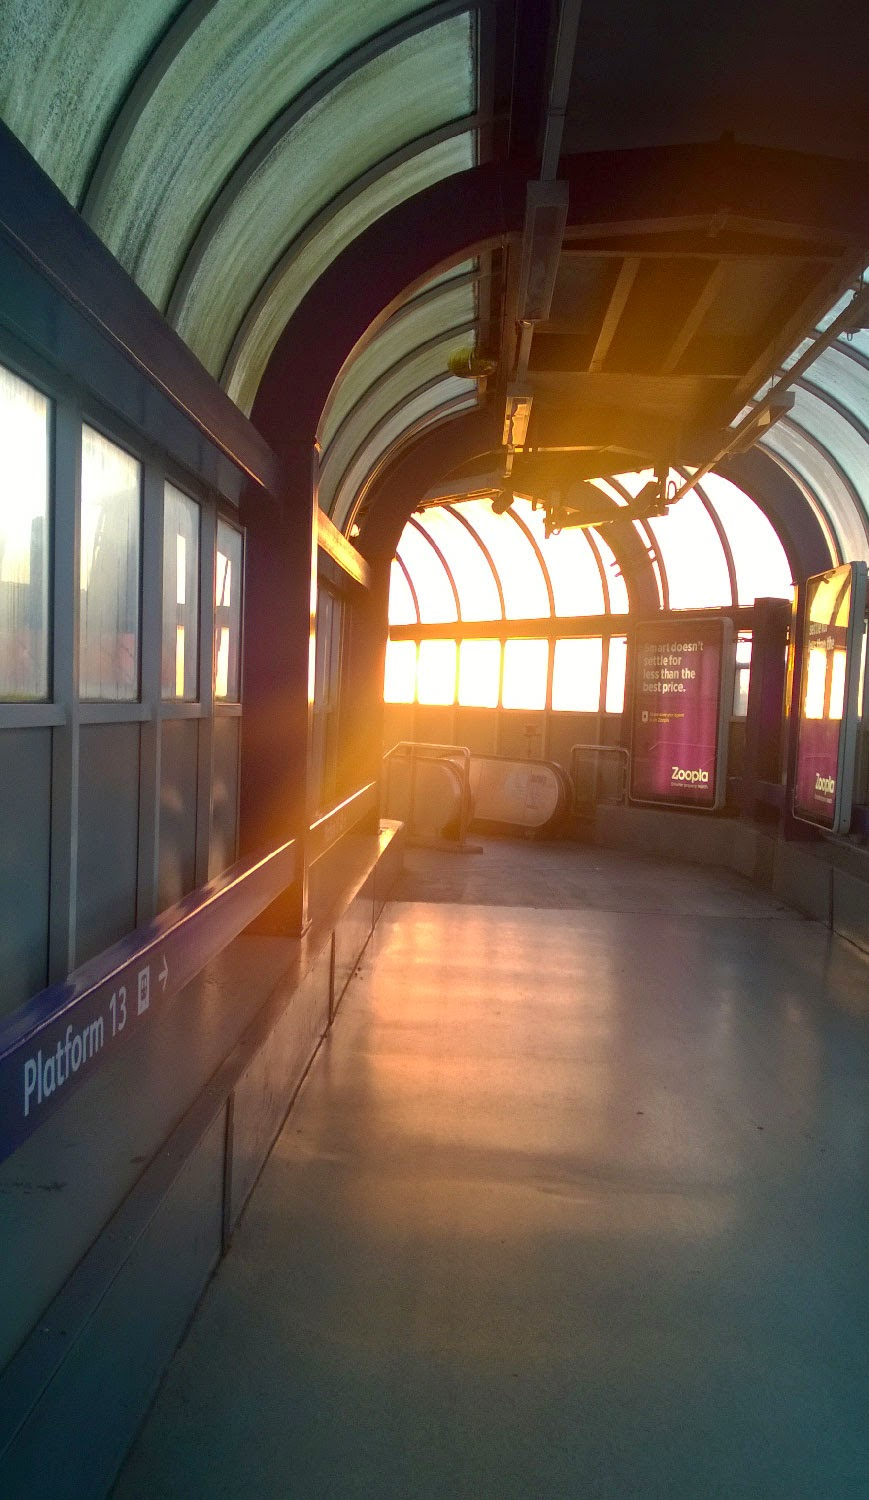 Sunlight at the train station